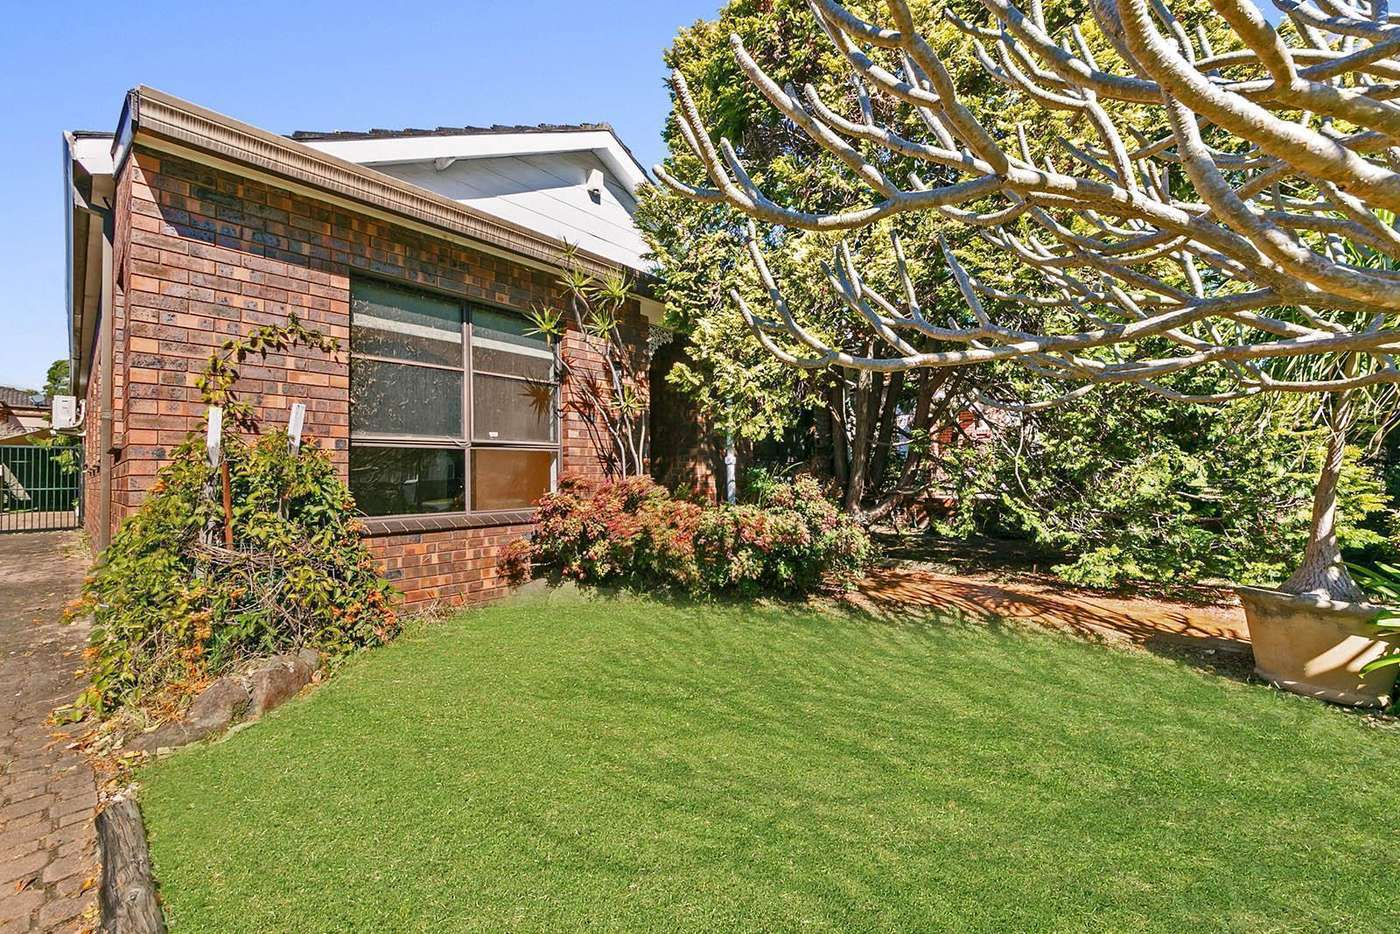 Main view of Homely house listing, 8 Davidson Avenue, Concord NSW 2137